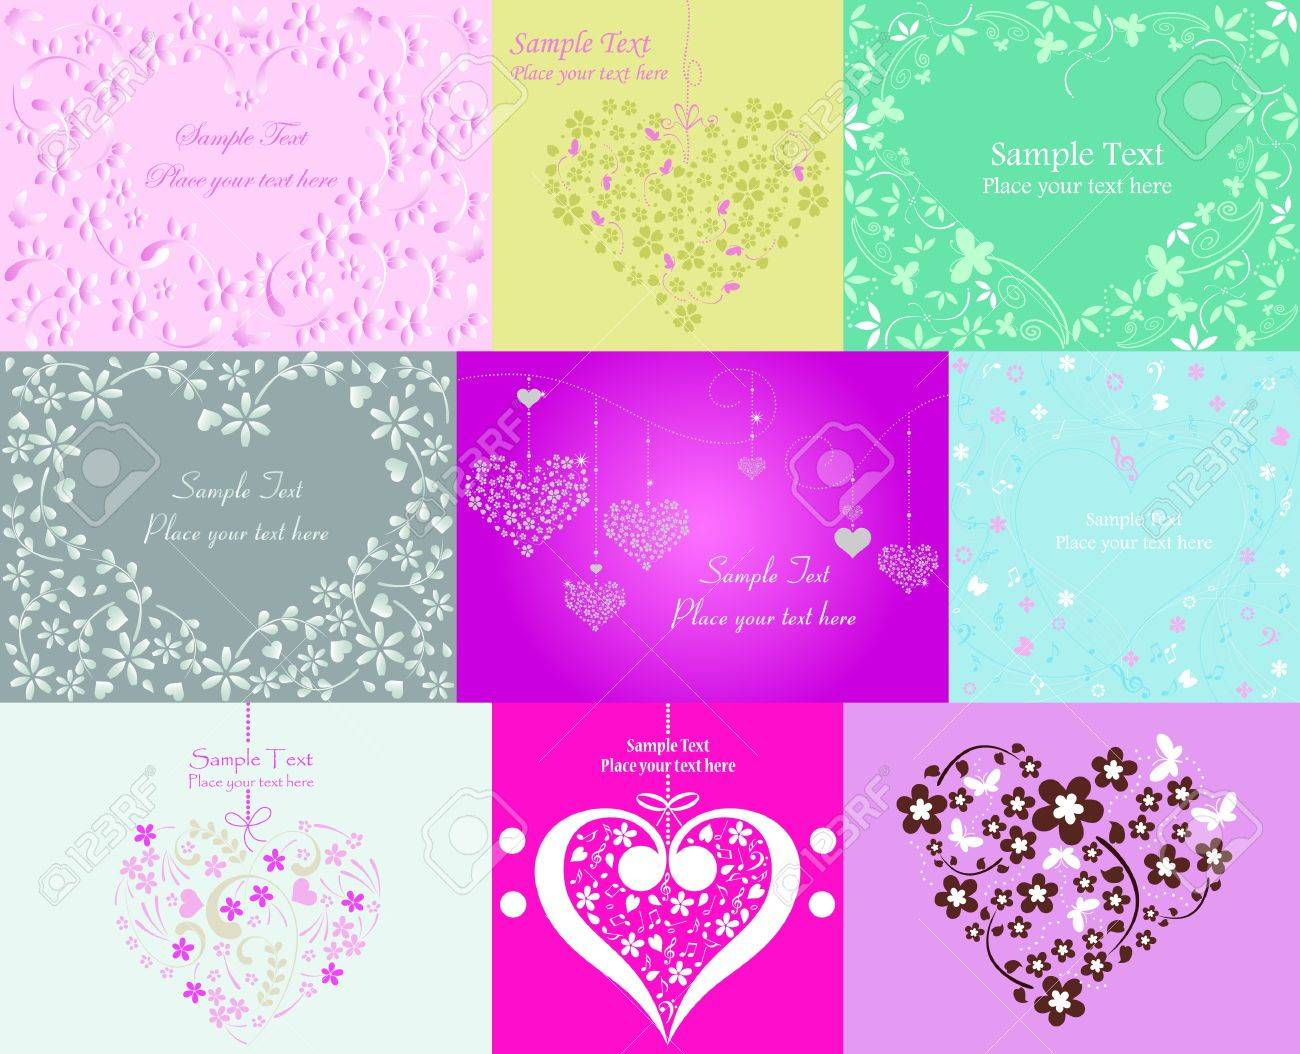 Valentine Day graphic design elements for cards and wallpaper � Part 1 (vector) Stock Vector - 11645569